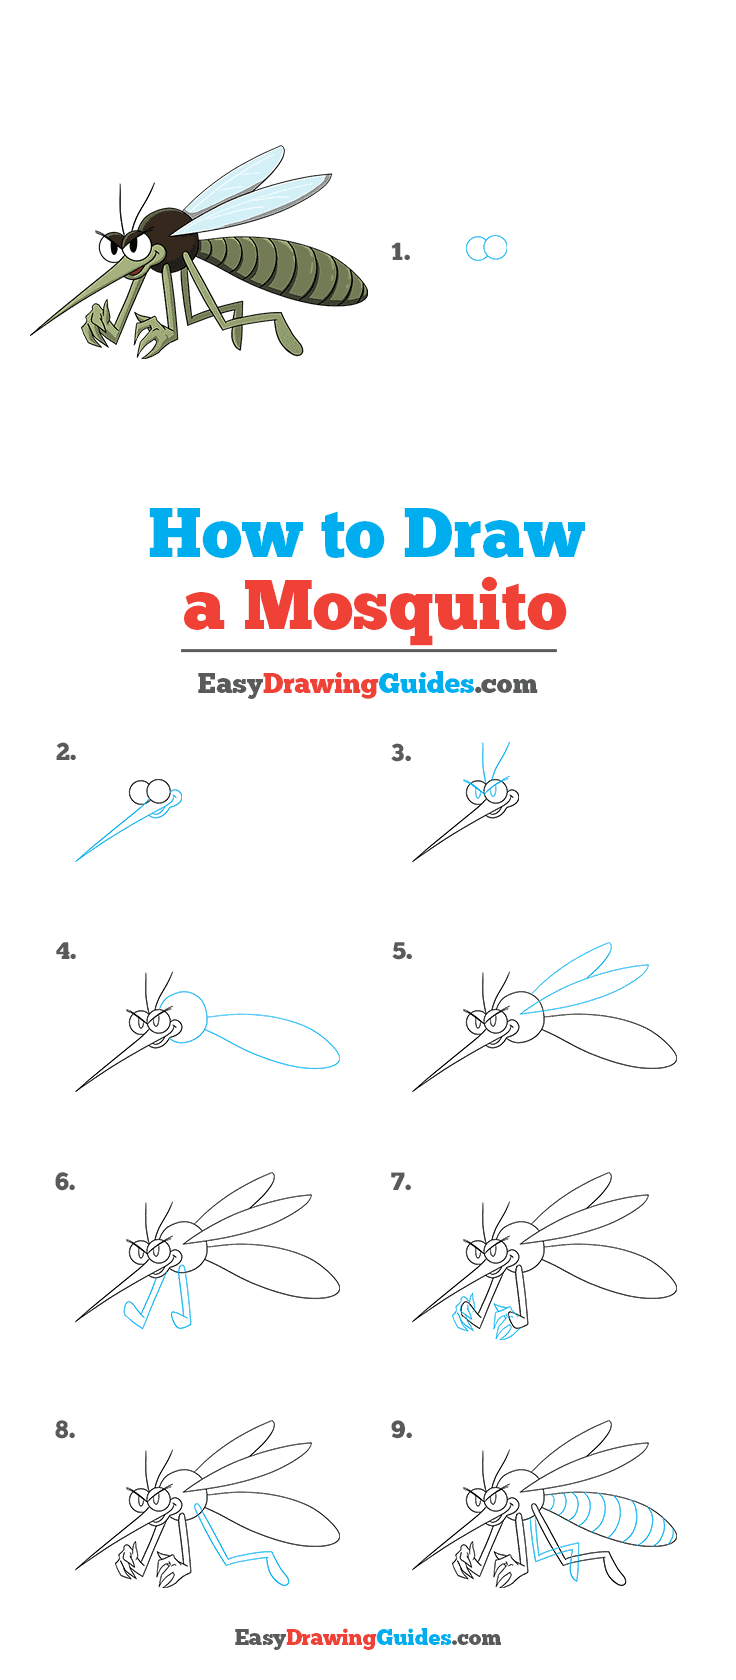 How to Draw a Mosquito Step by Step Tutorial Image